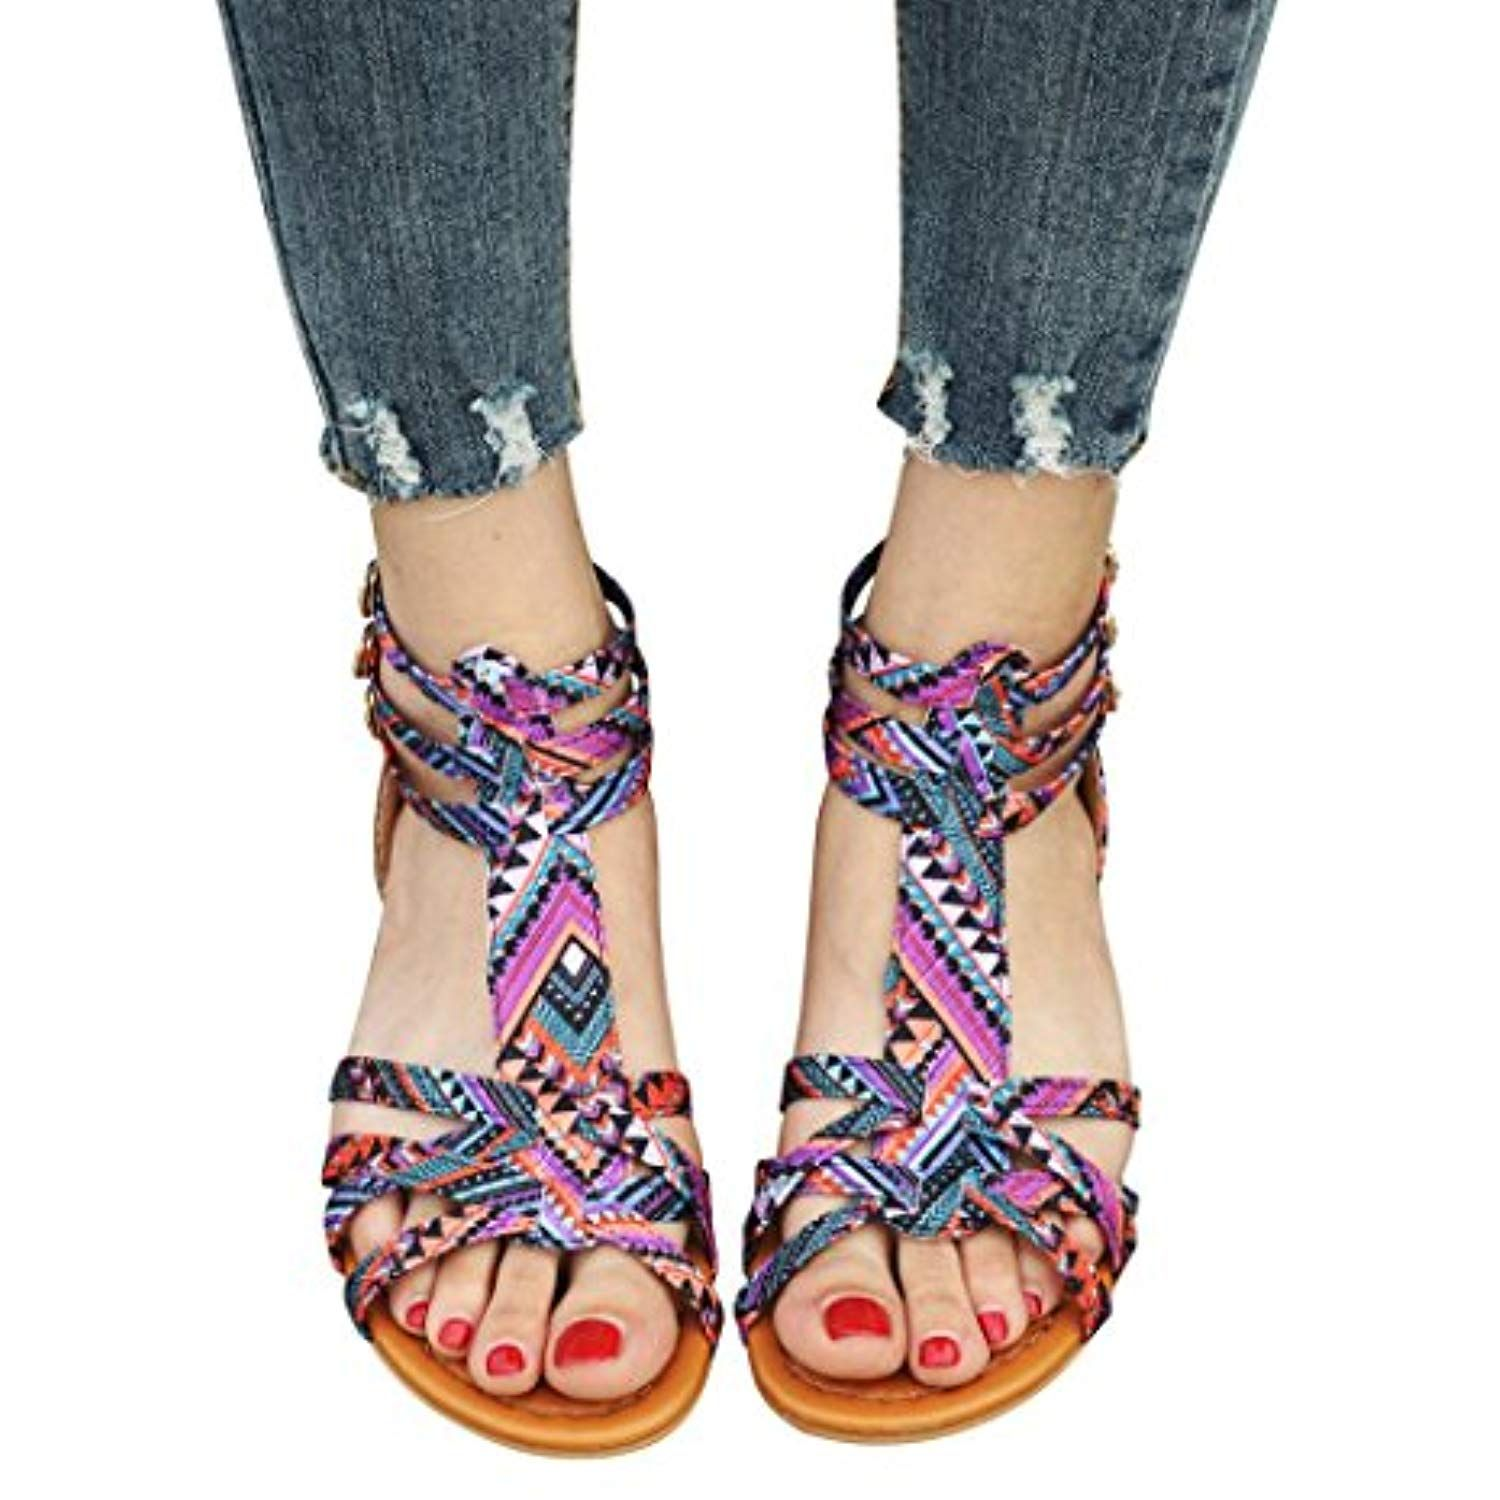 a54f2b70672d3 Baigoods Women Bohemia Sandals Ethnic Style Sandals Flats Shoes Buckle  Strap Summer Flat Sandals     Continue to the product at the image link.